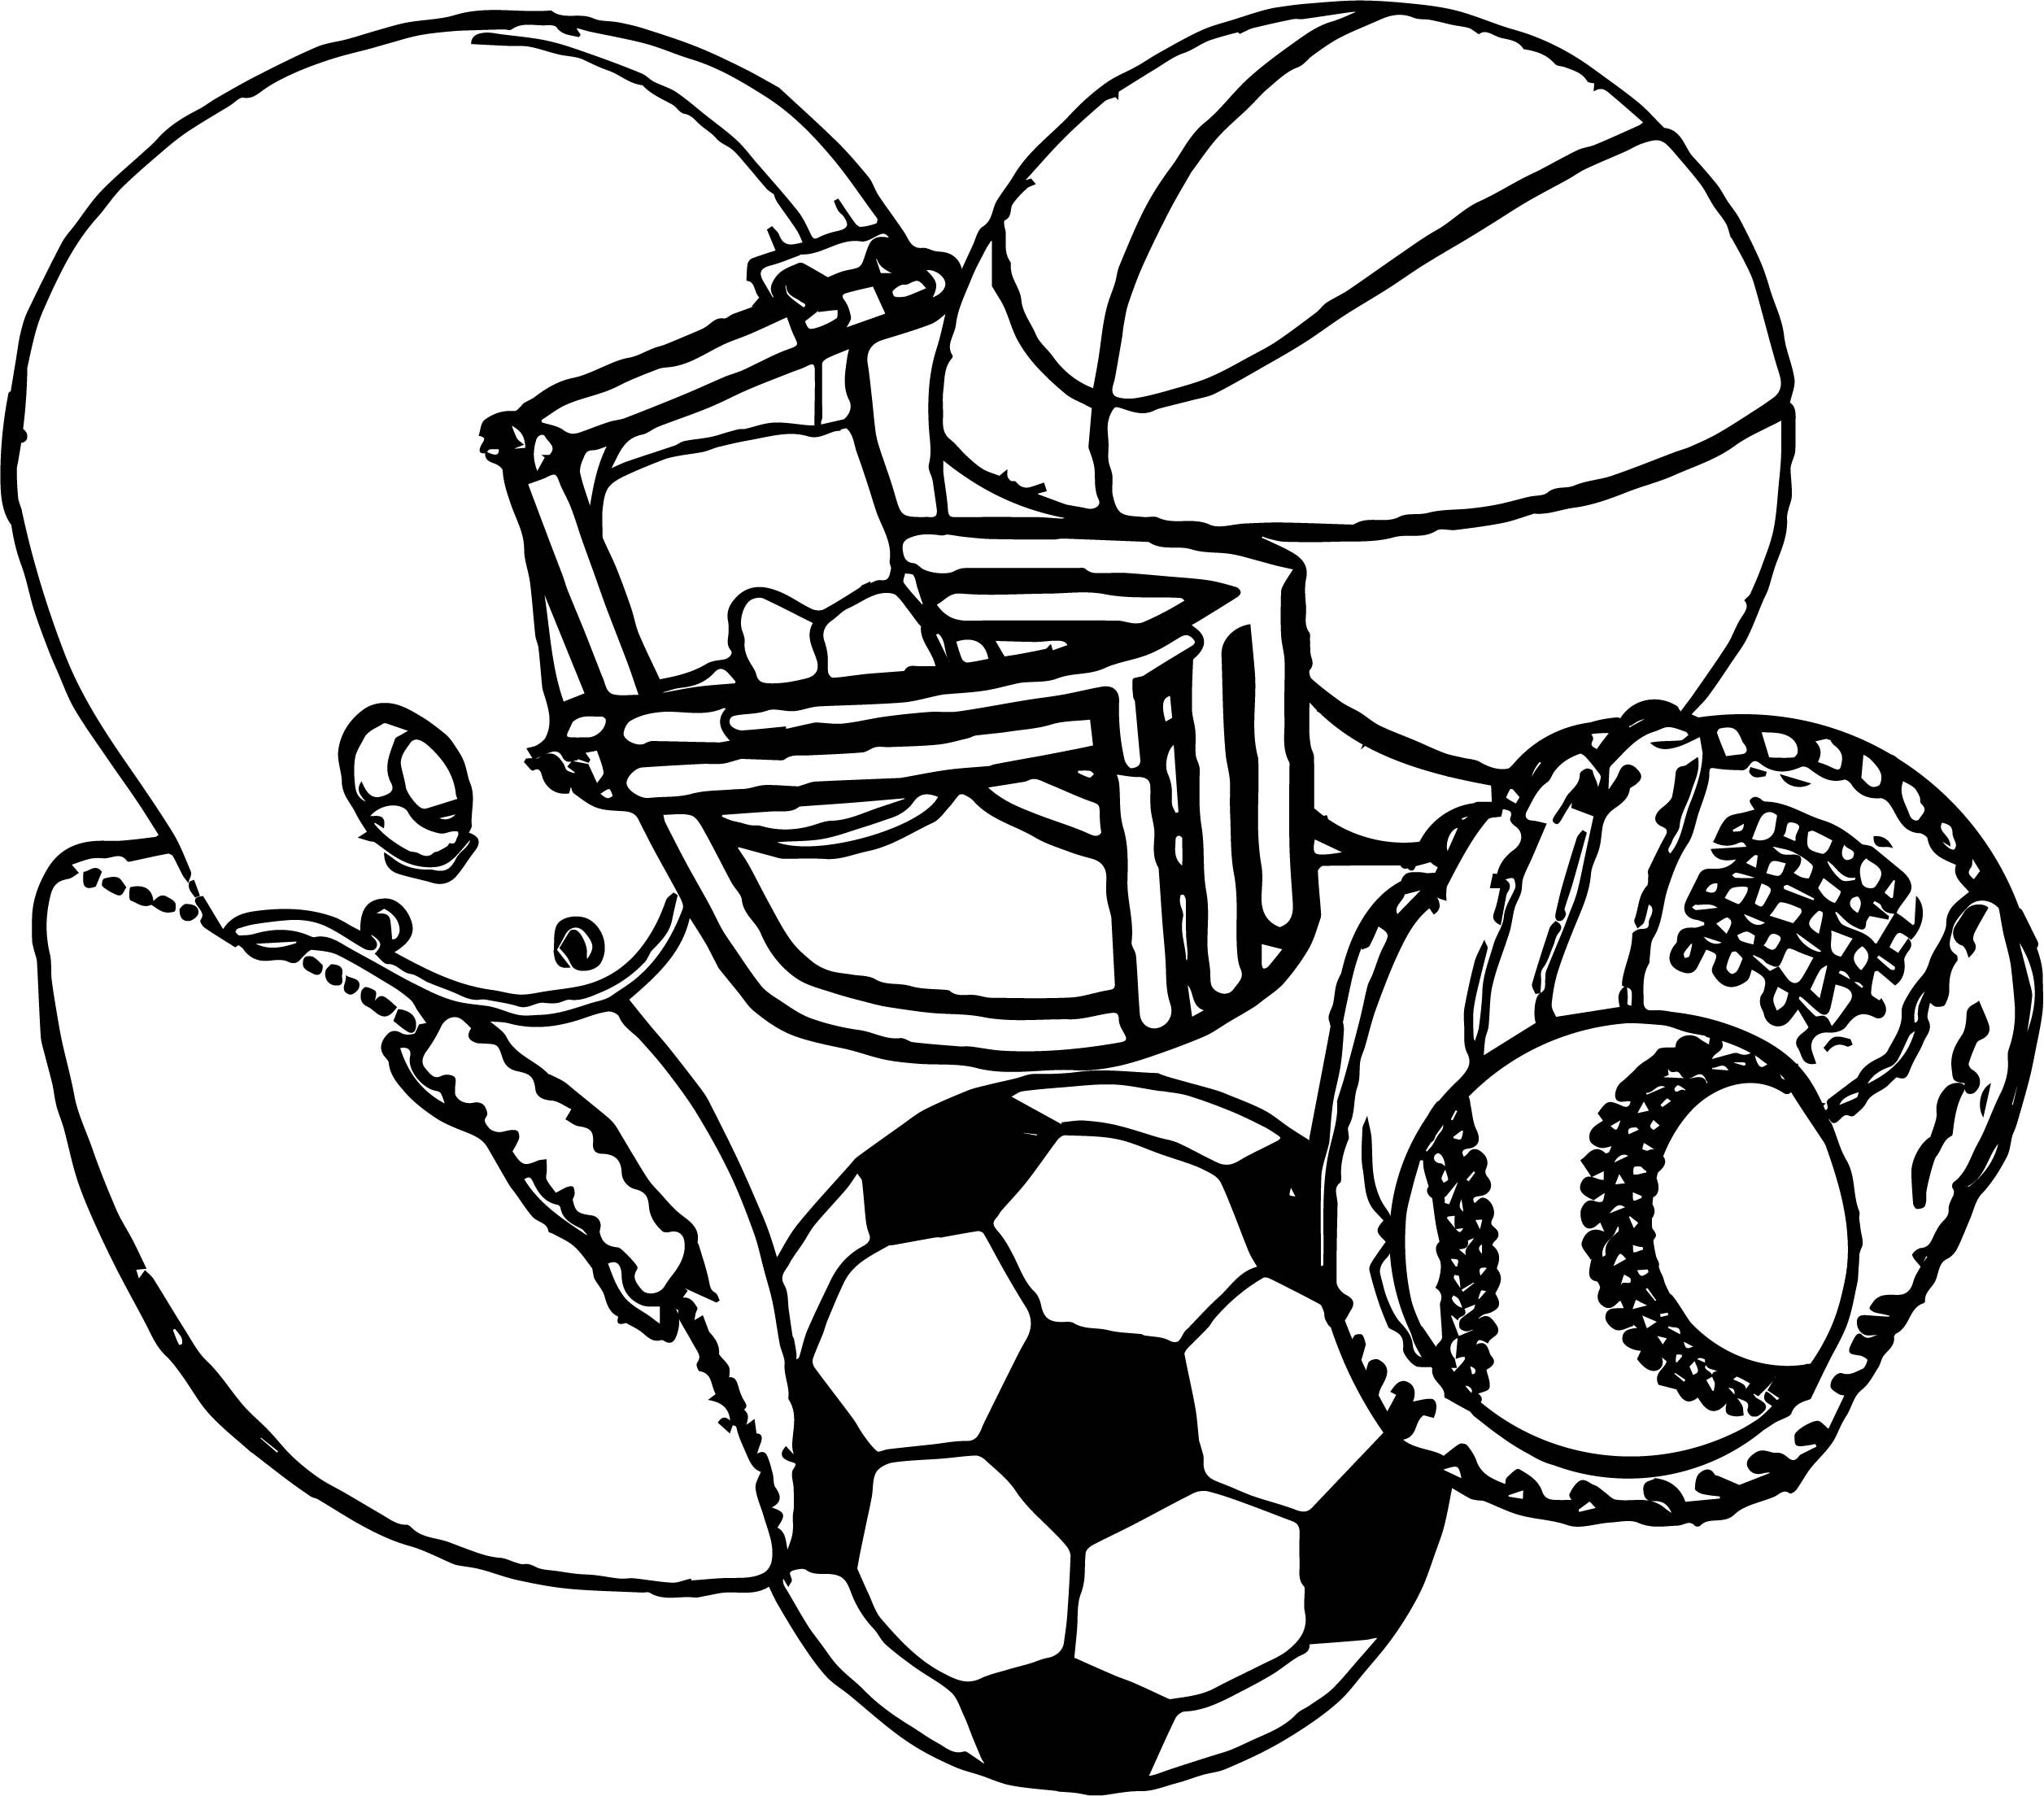 2513x2208 Free Basketball Coloring Pages New Sure Fire Basketball Coloring